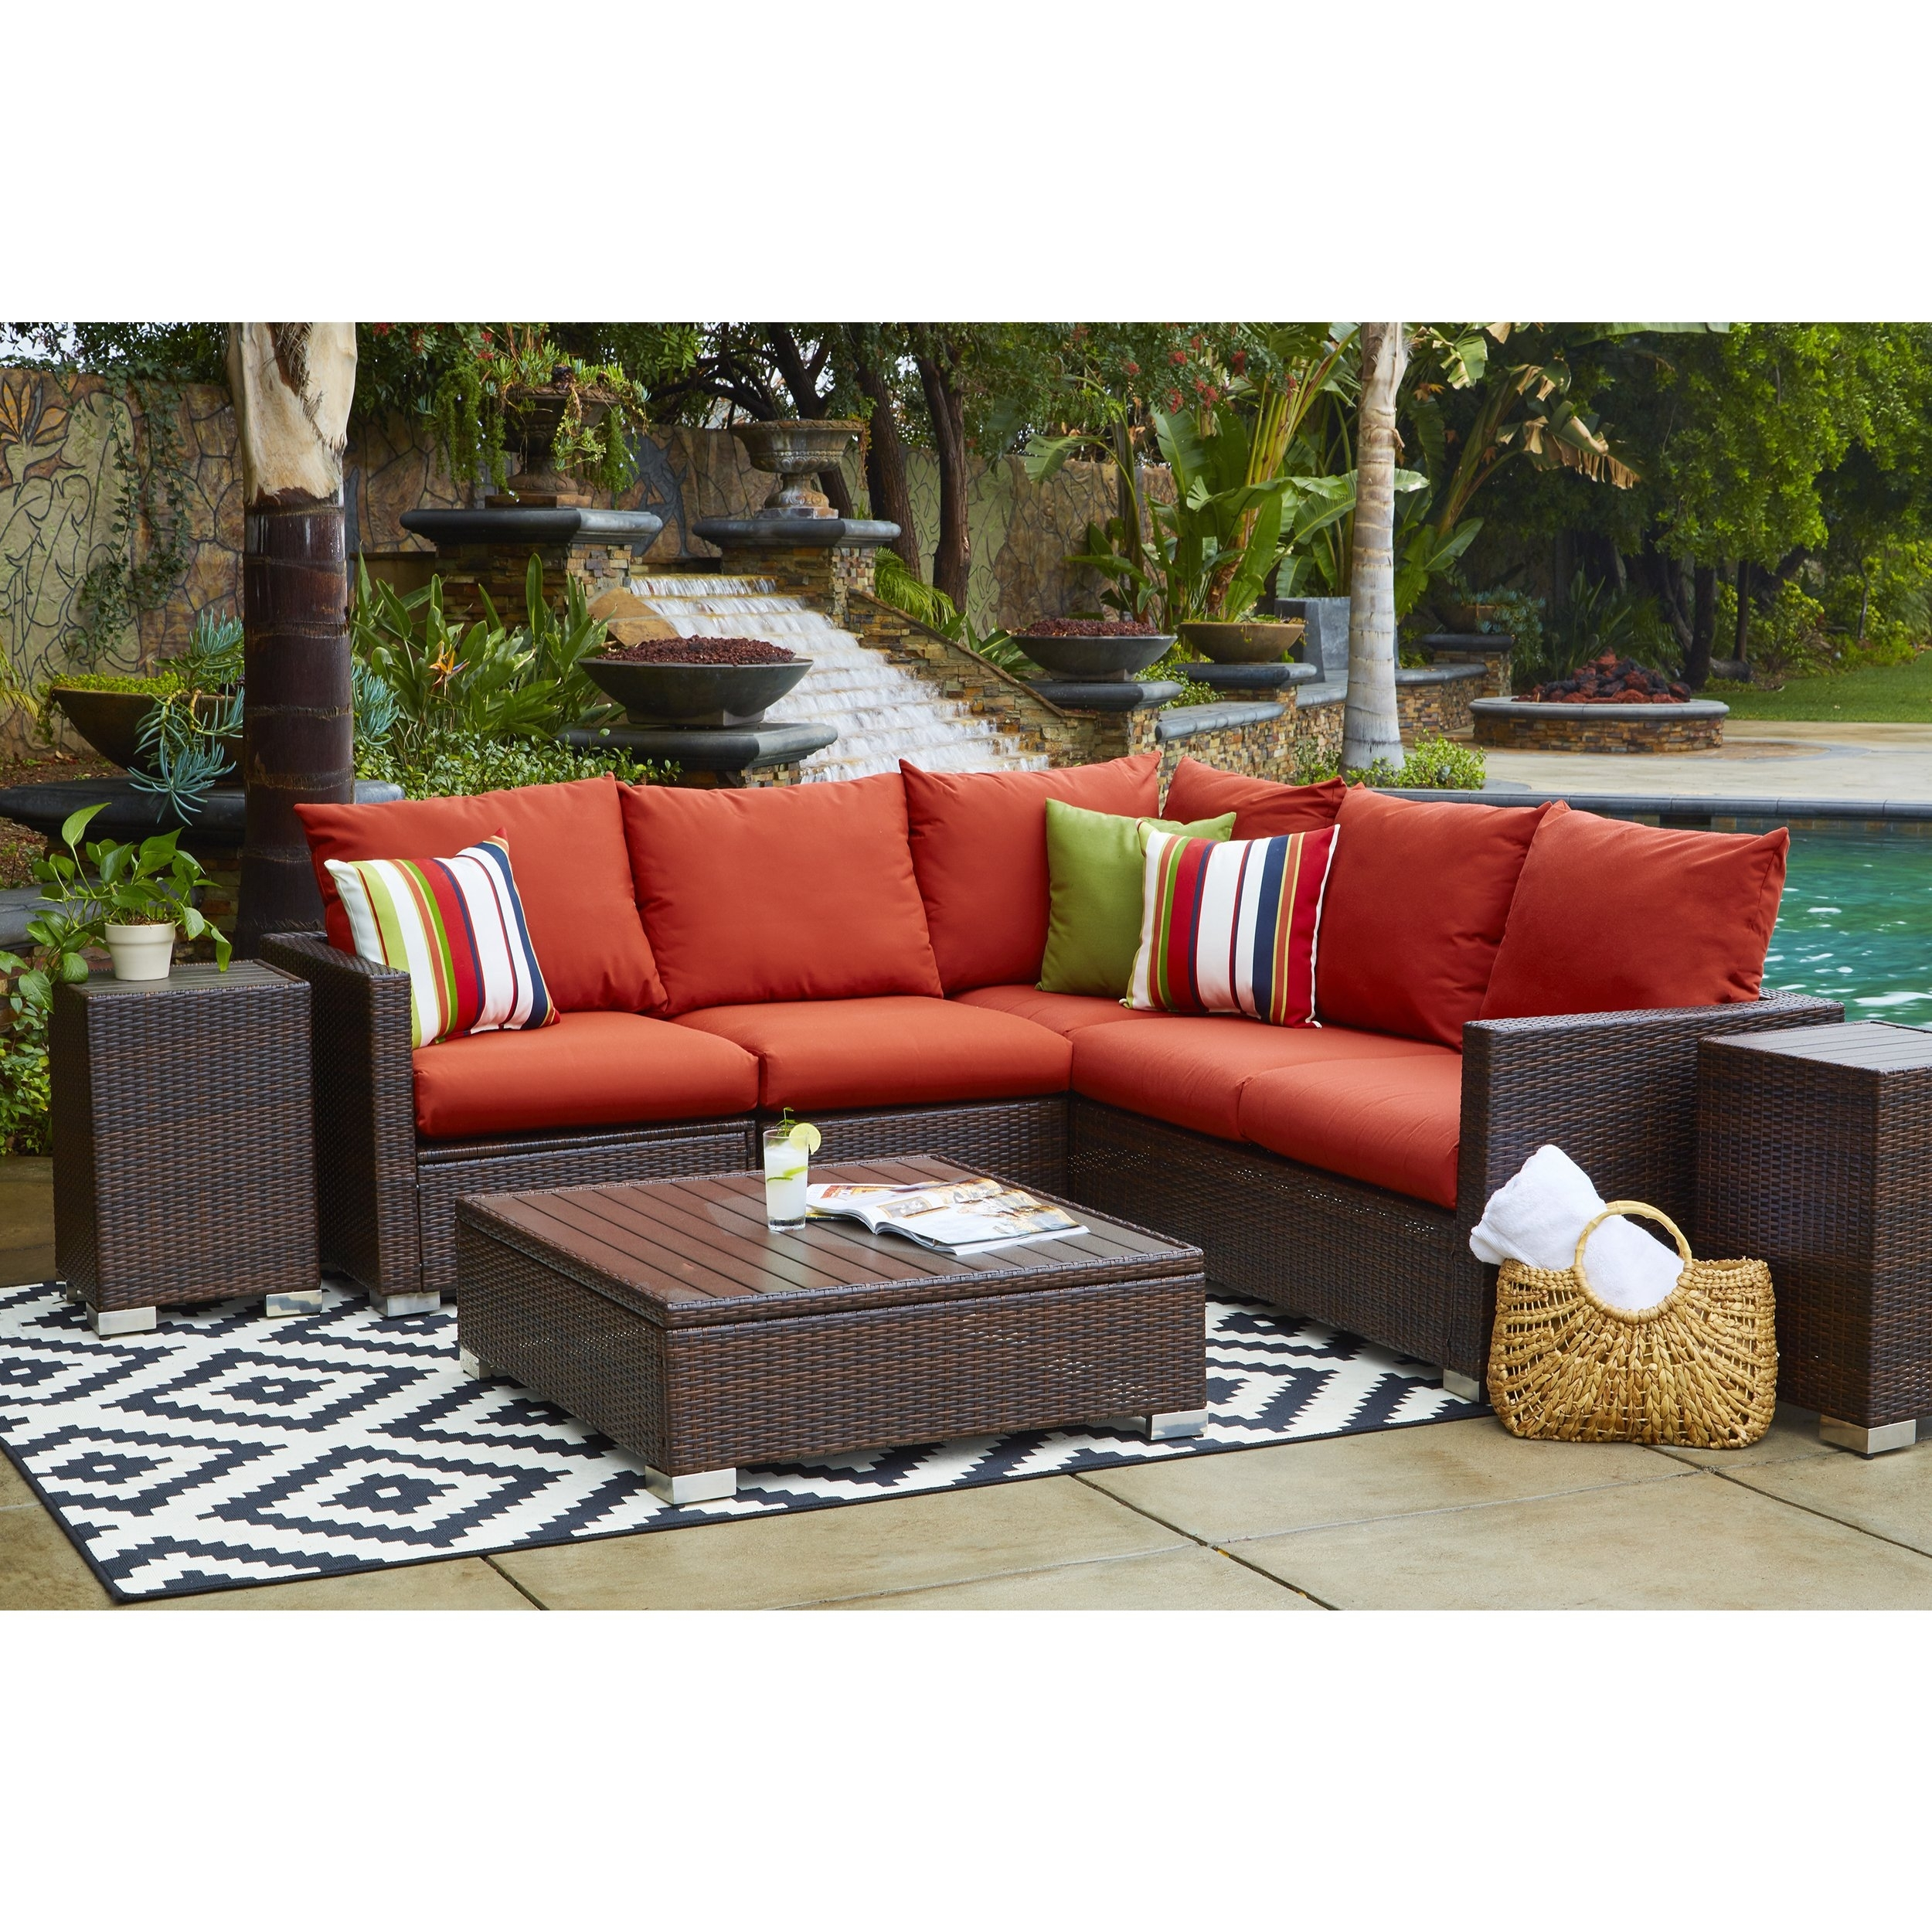 Shop Portfolio Aldrich Indoor/outdoor 3 Piece Sectional Set With With Regard To Karen 3 Piece Sectionals (View 10 of 25)